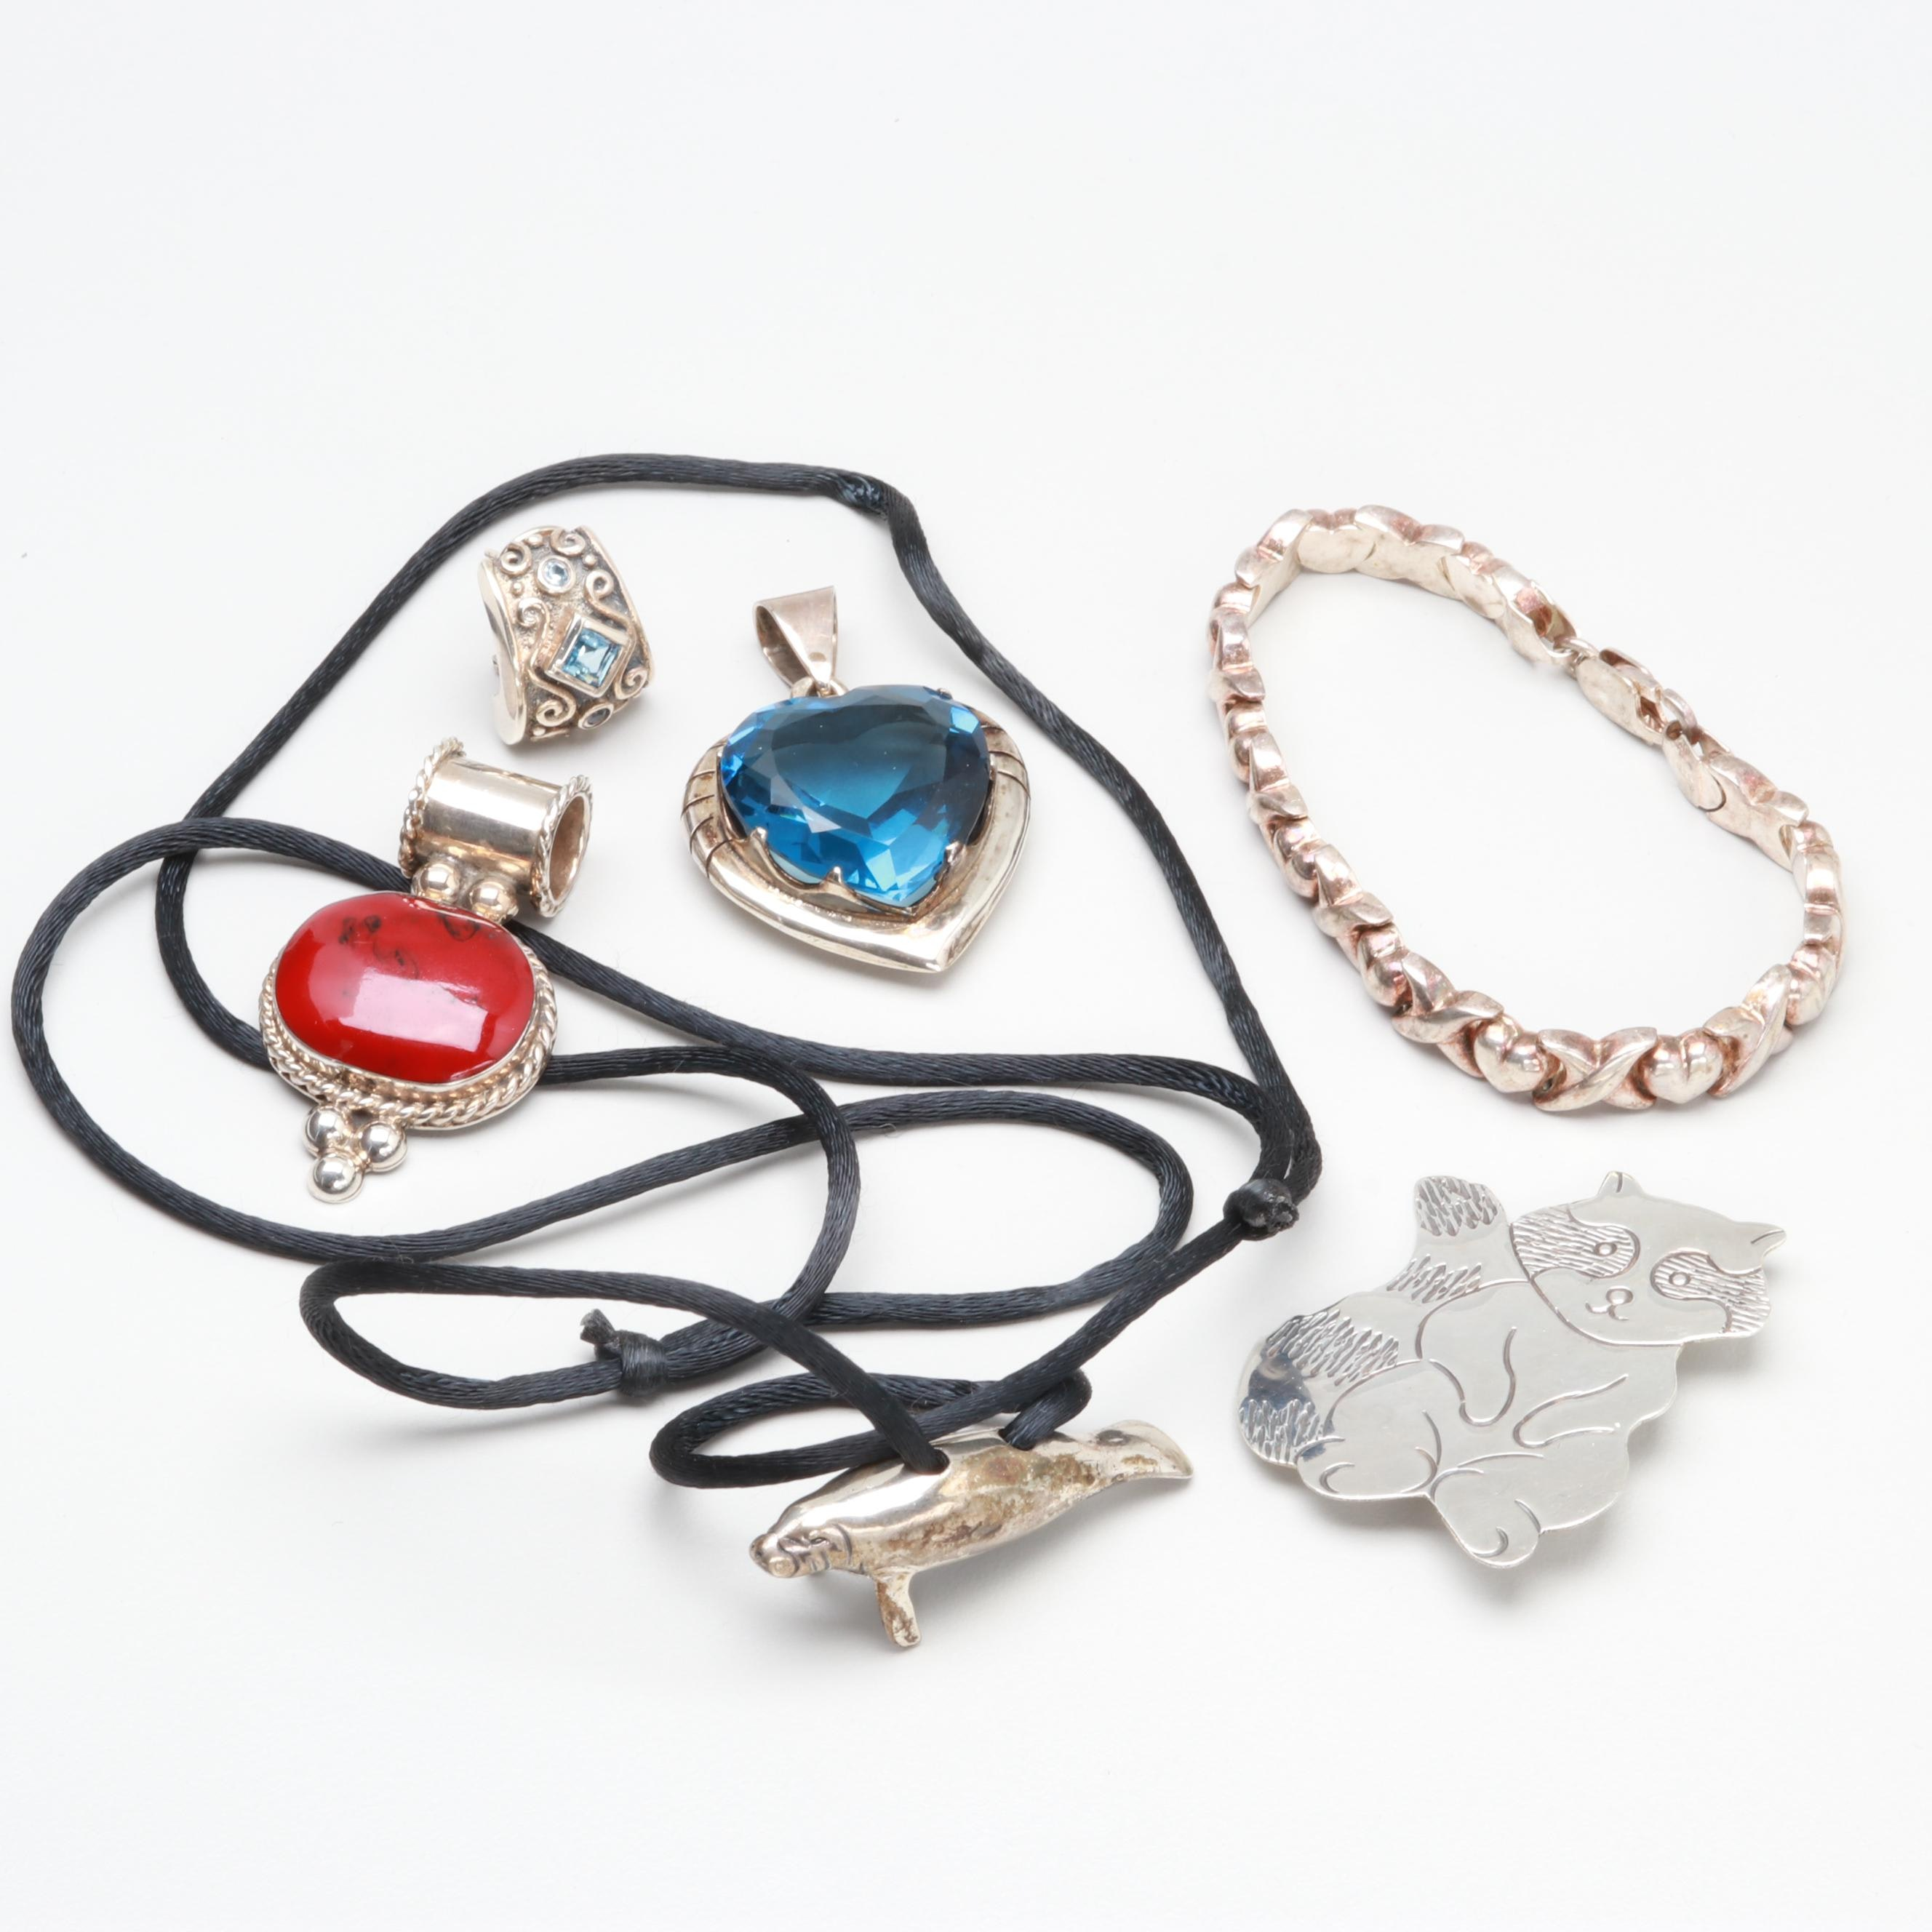 Sterling Silver Jewelry Including Glass, Resin and Mexican Pieces